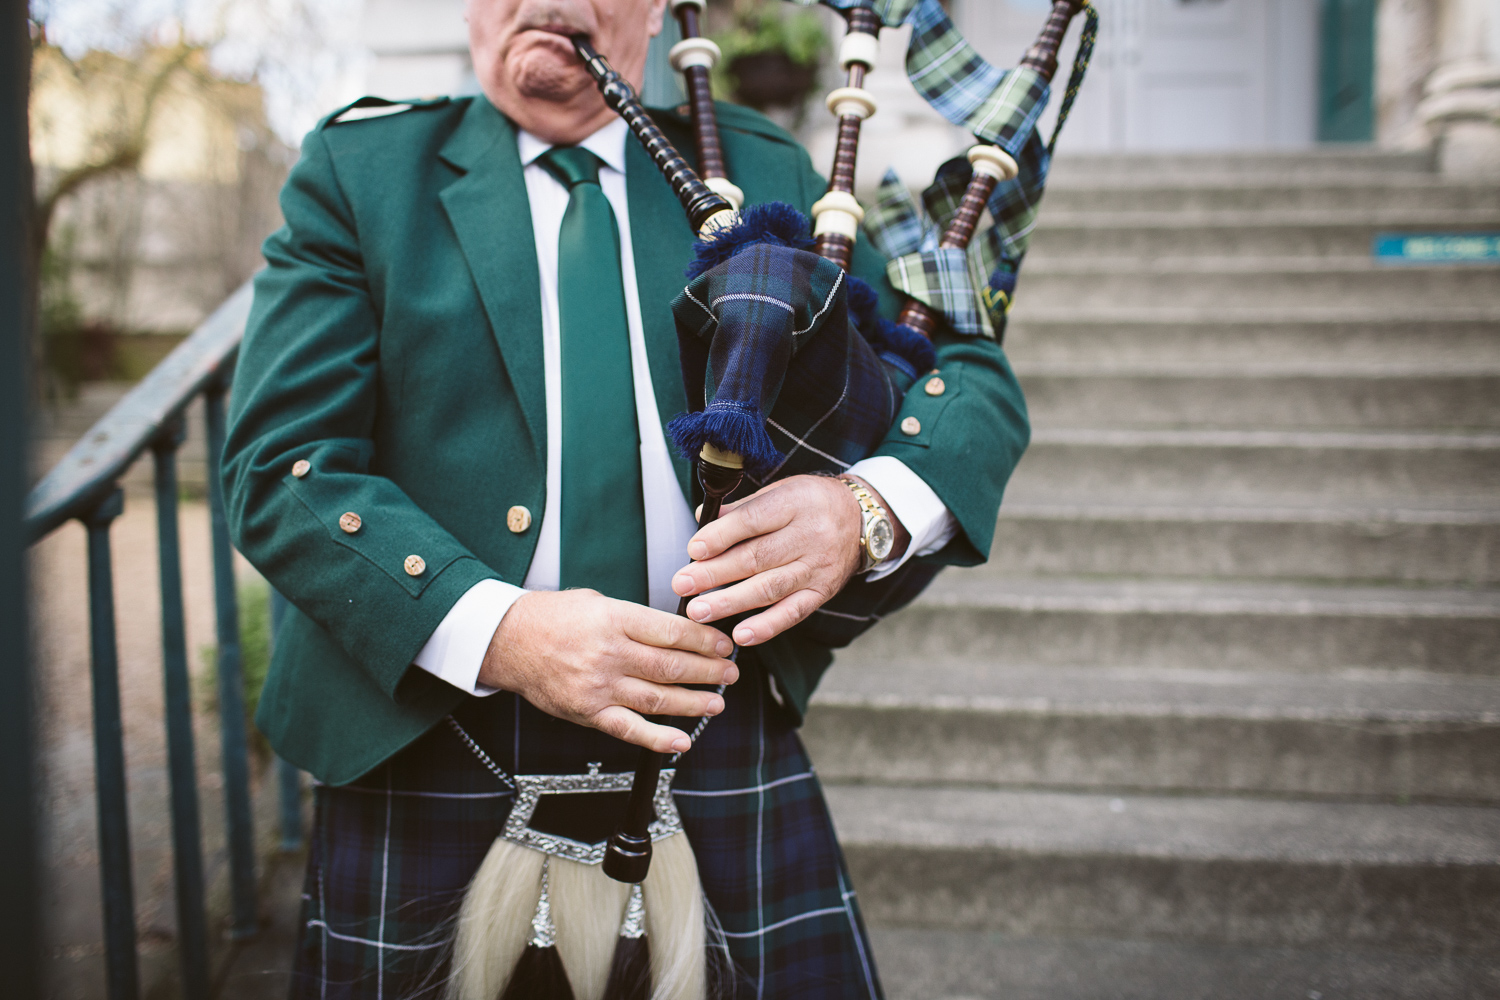 Winter wedding, bagpipes player